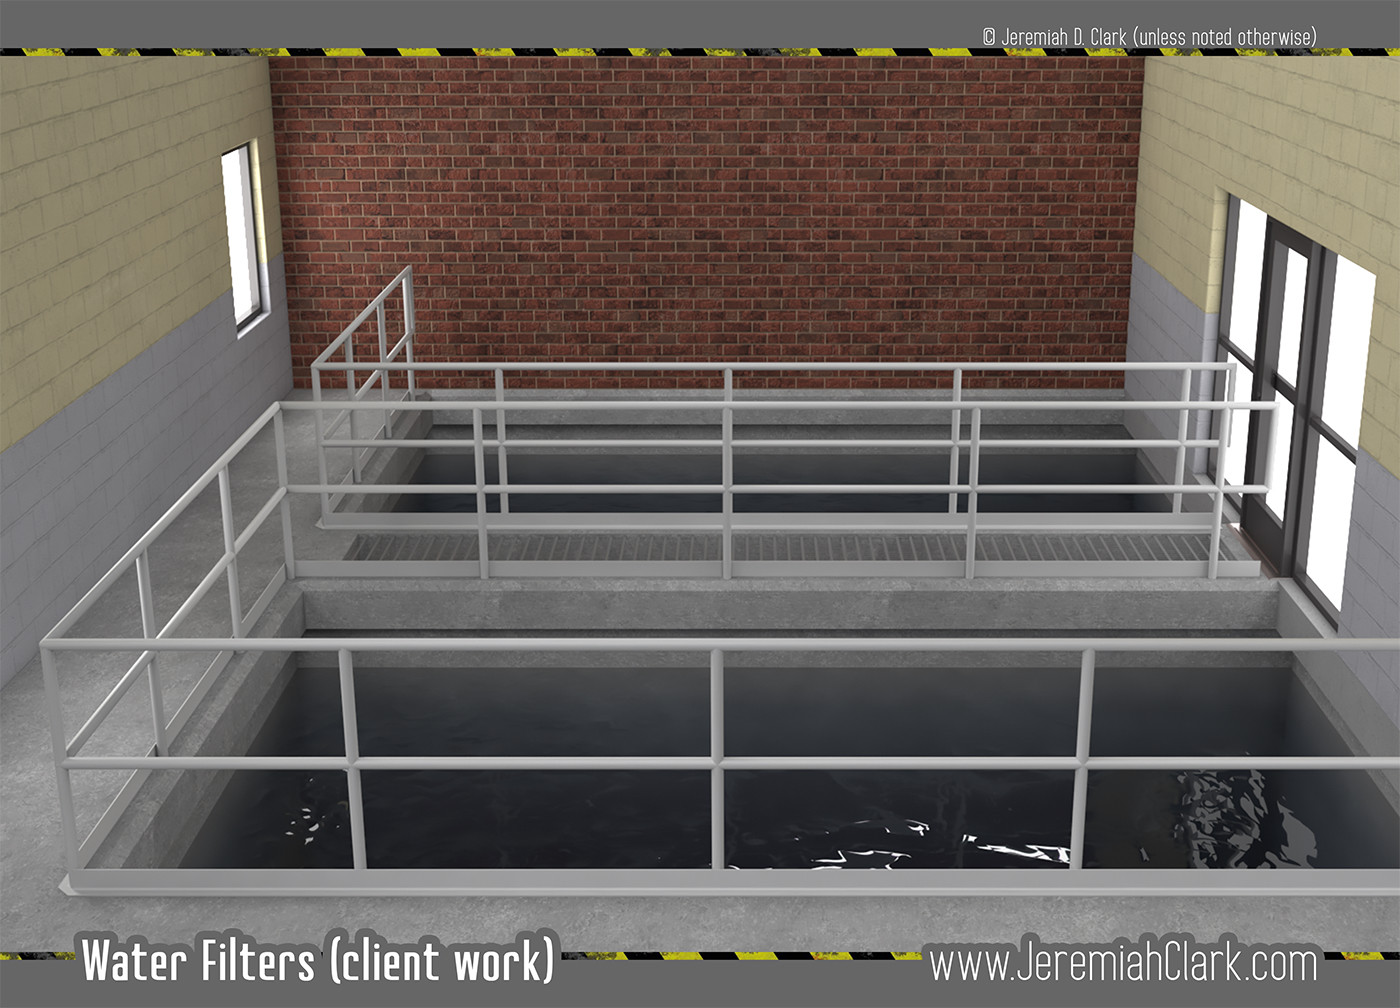 Water Filter Screen. Modeled and textured in 3Ds Max. Rendered with V-Ray.